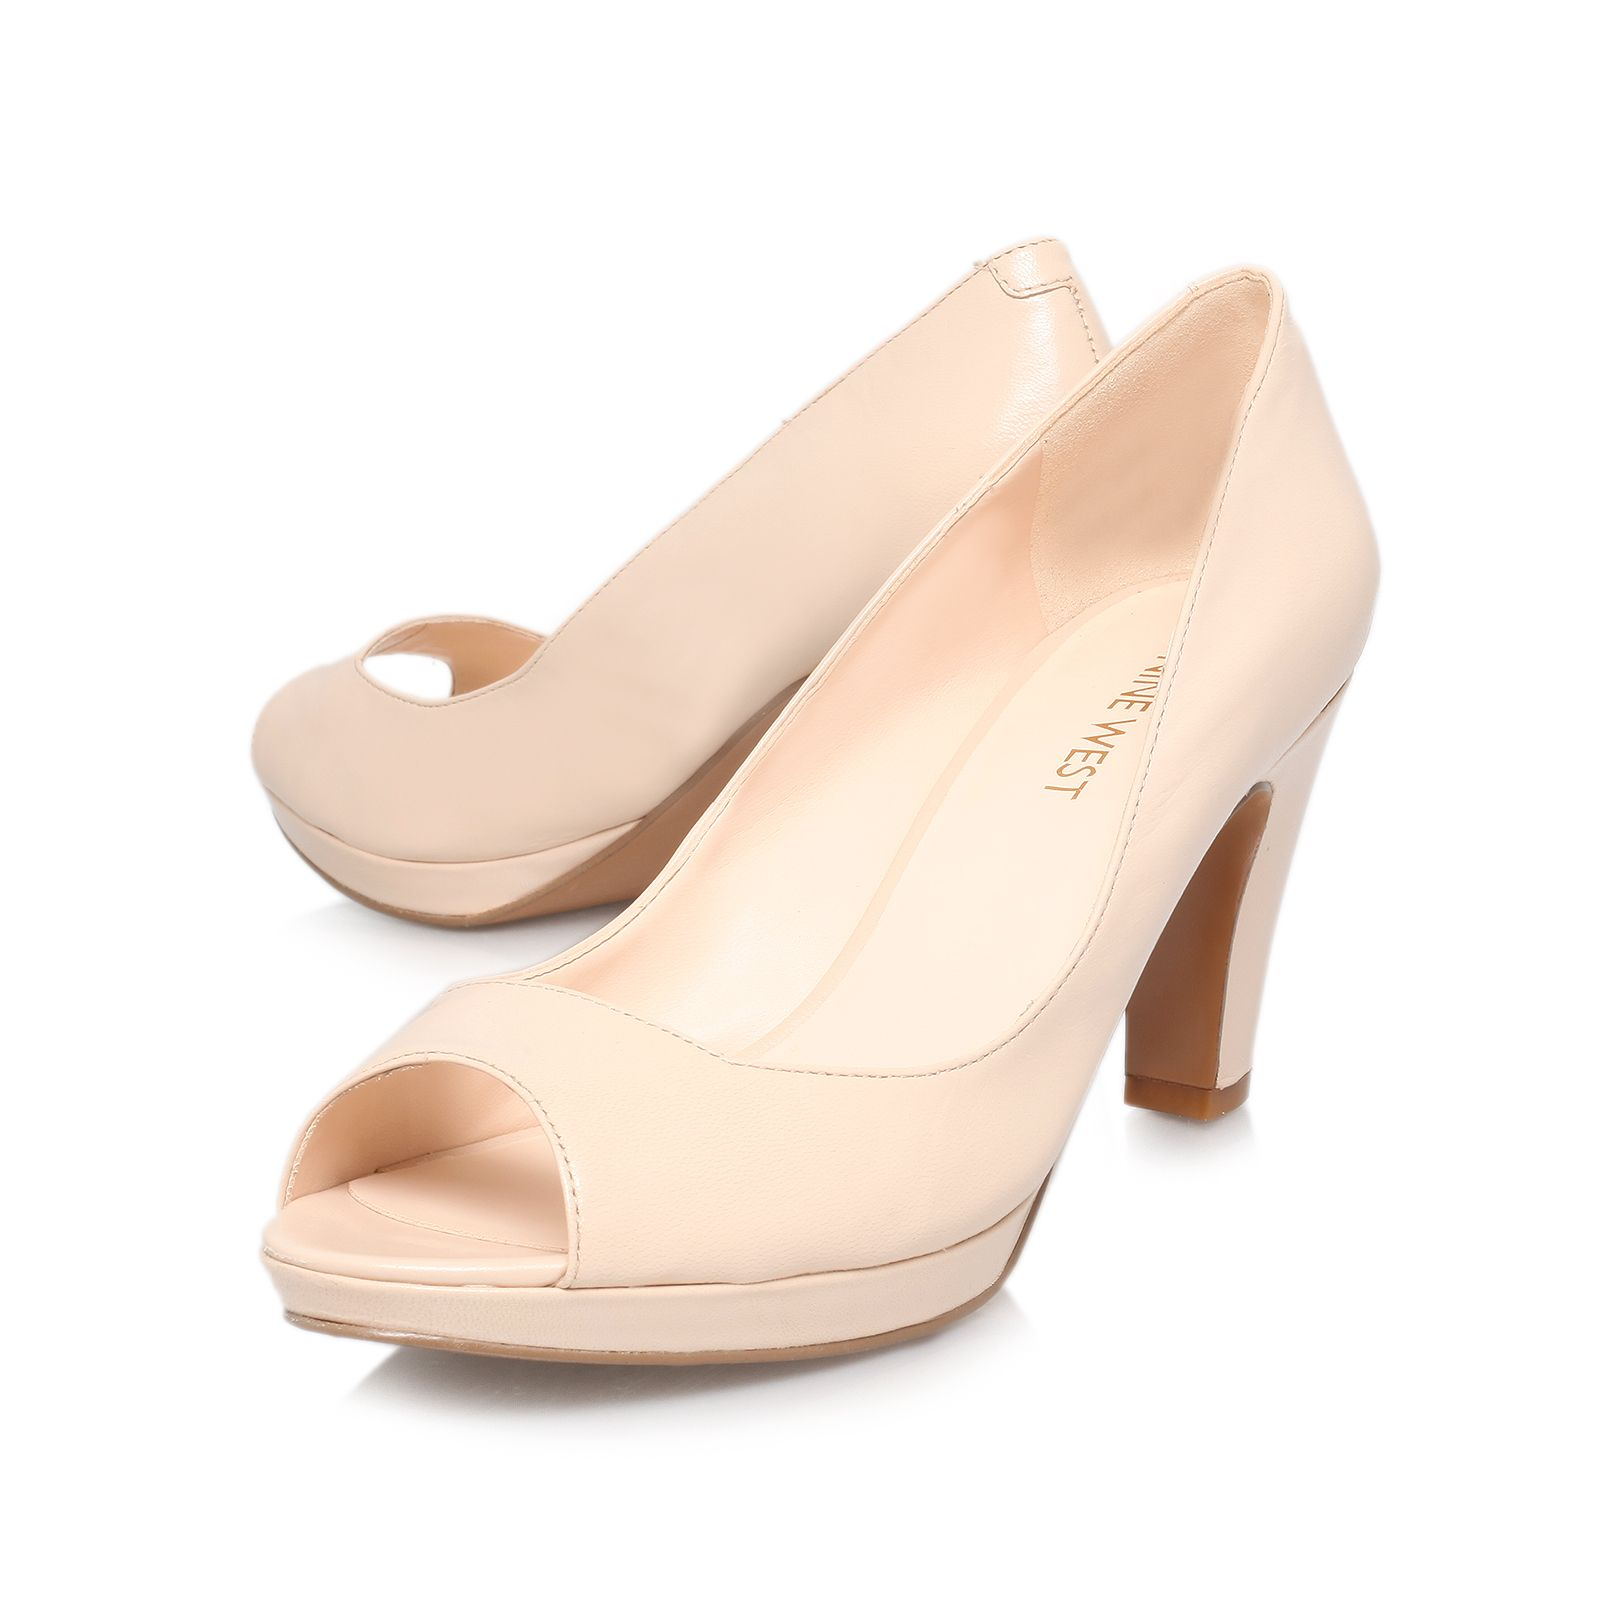 Shipshape court shoes